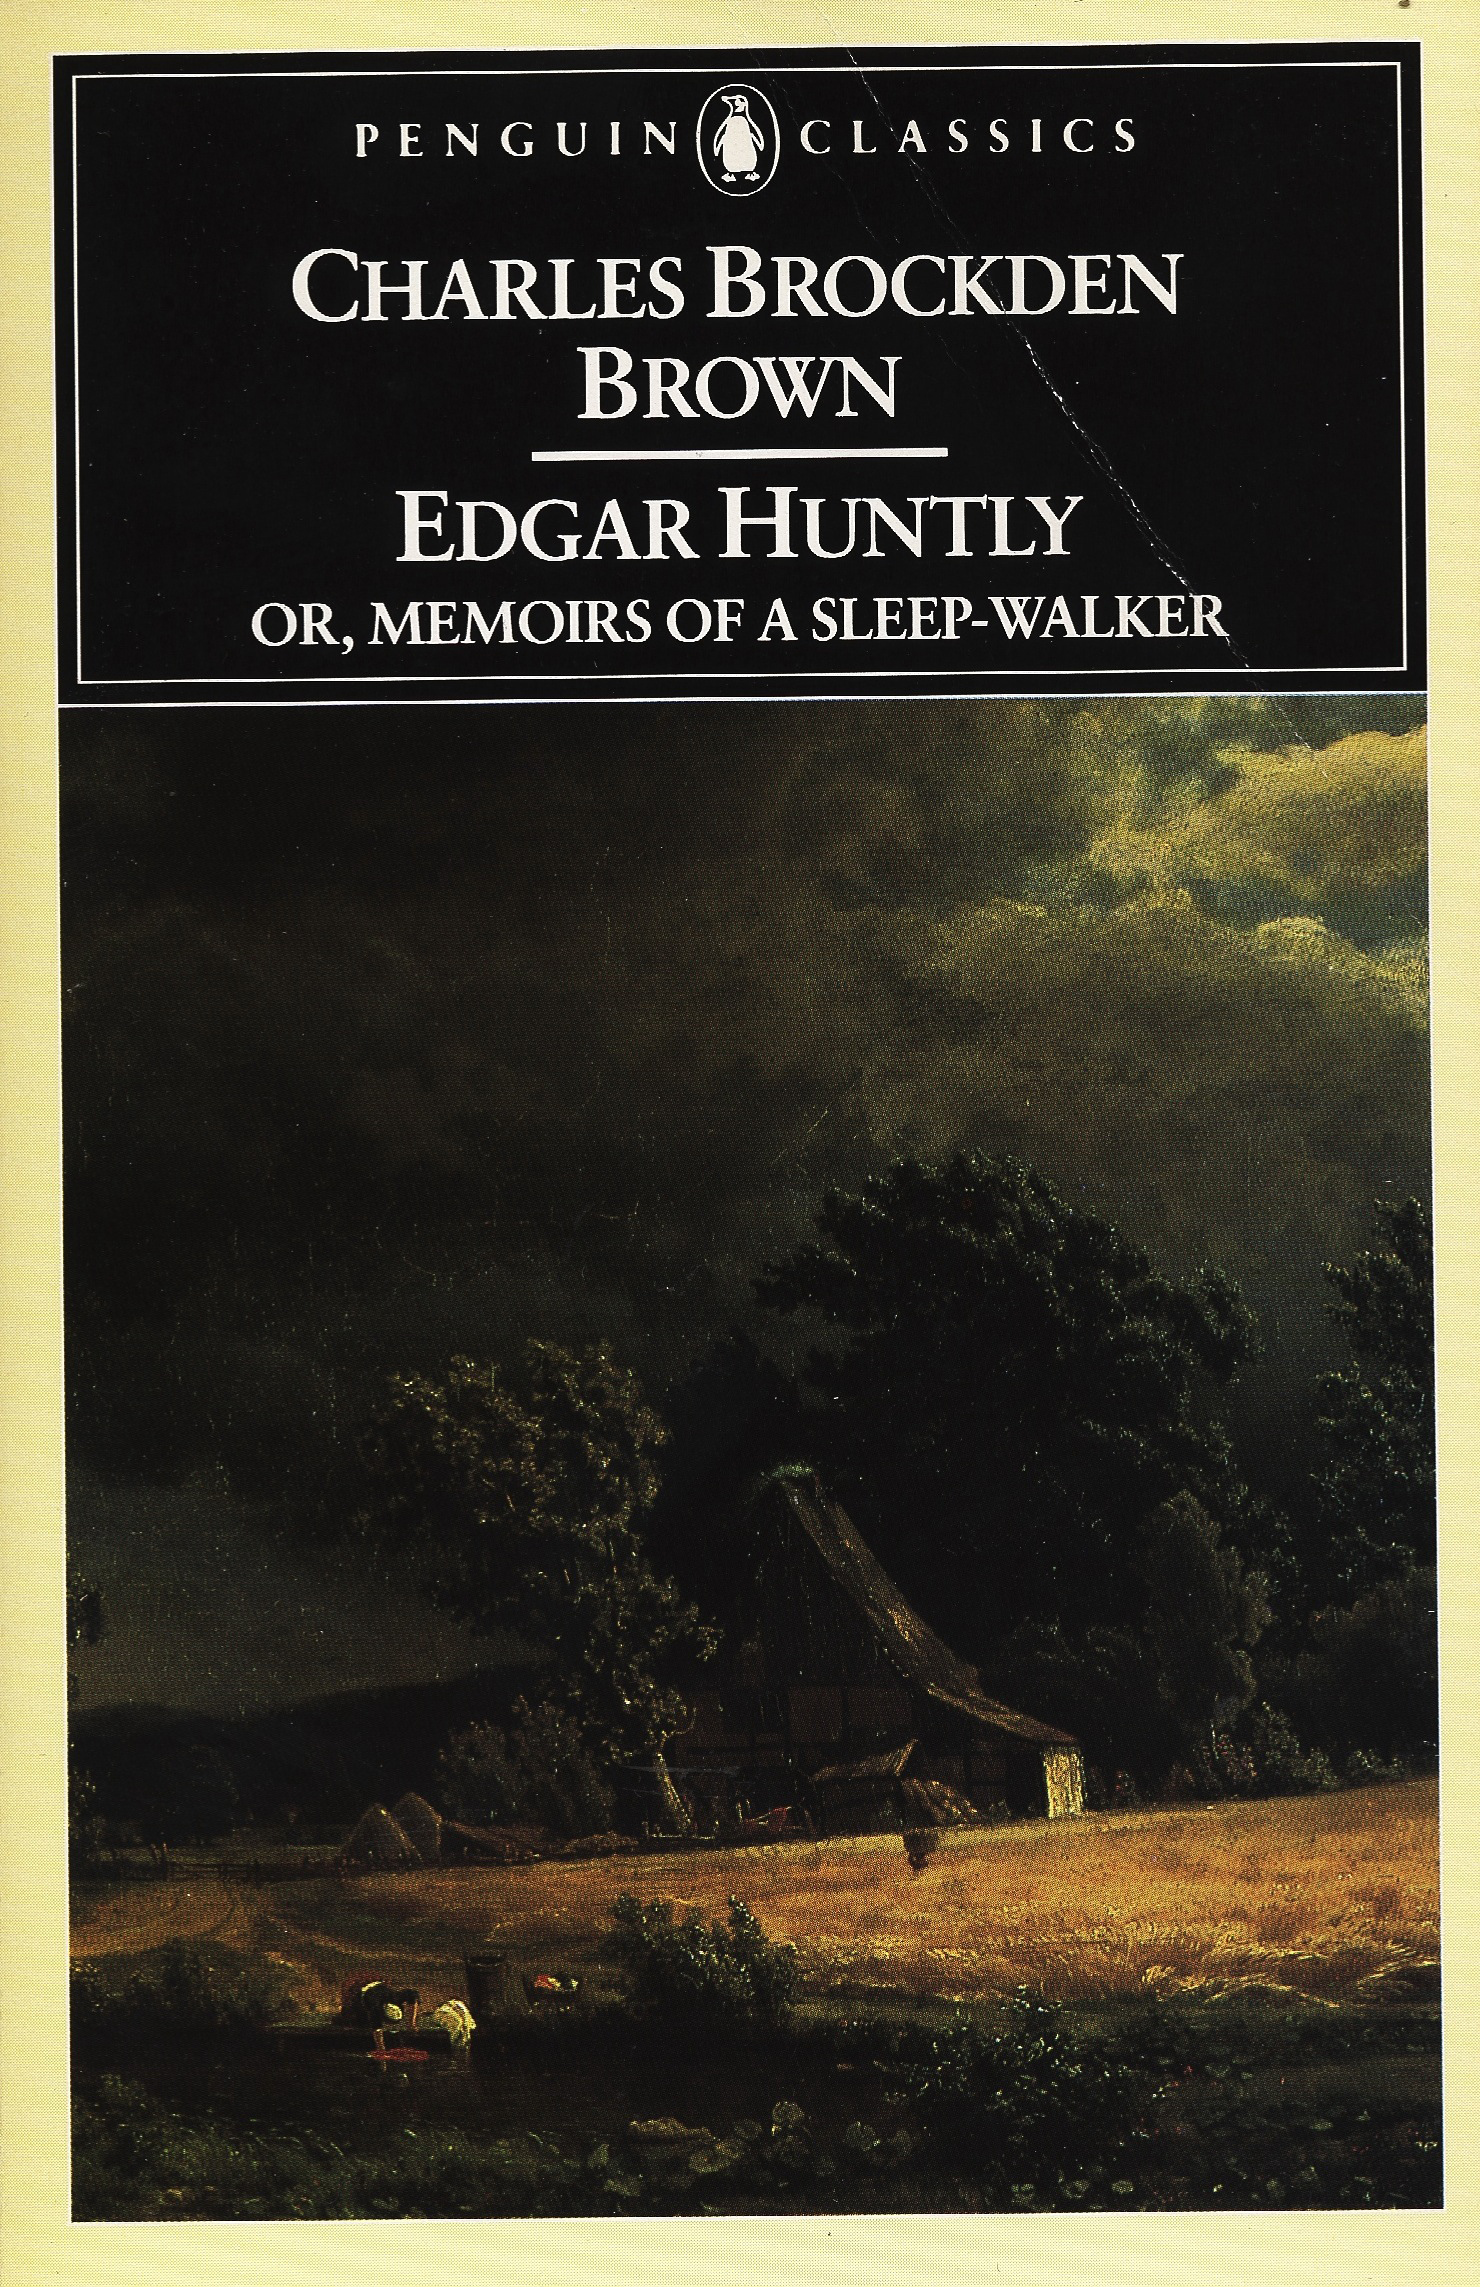 edgar huntly This biography is reprinted with the permission of broadview press from mary chapman's edition 5 qu in clark intro to charles brockden brown,edgar huntly.